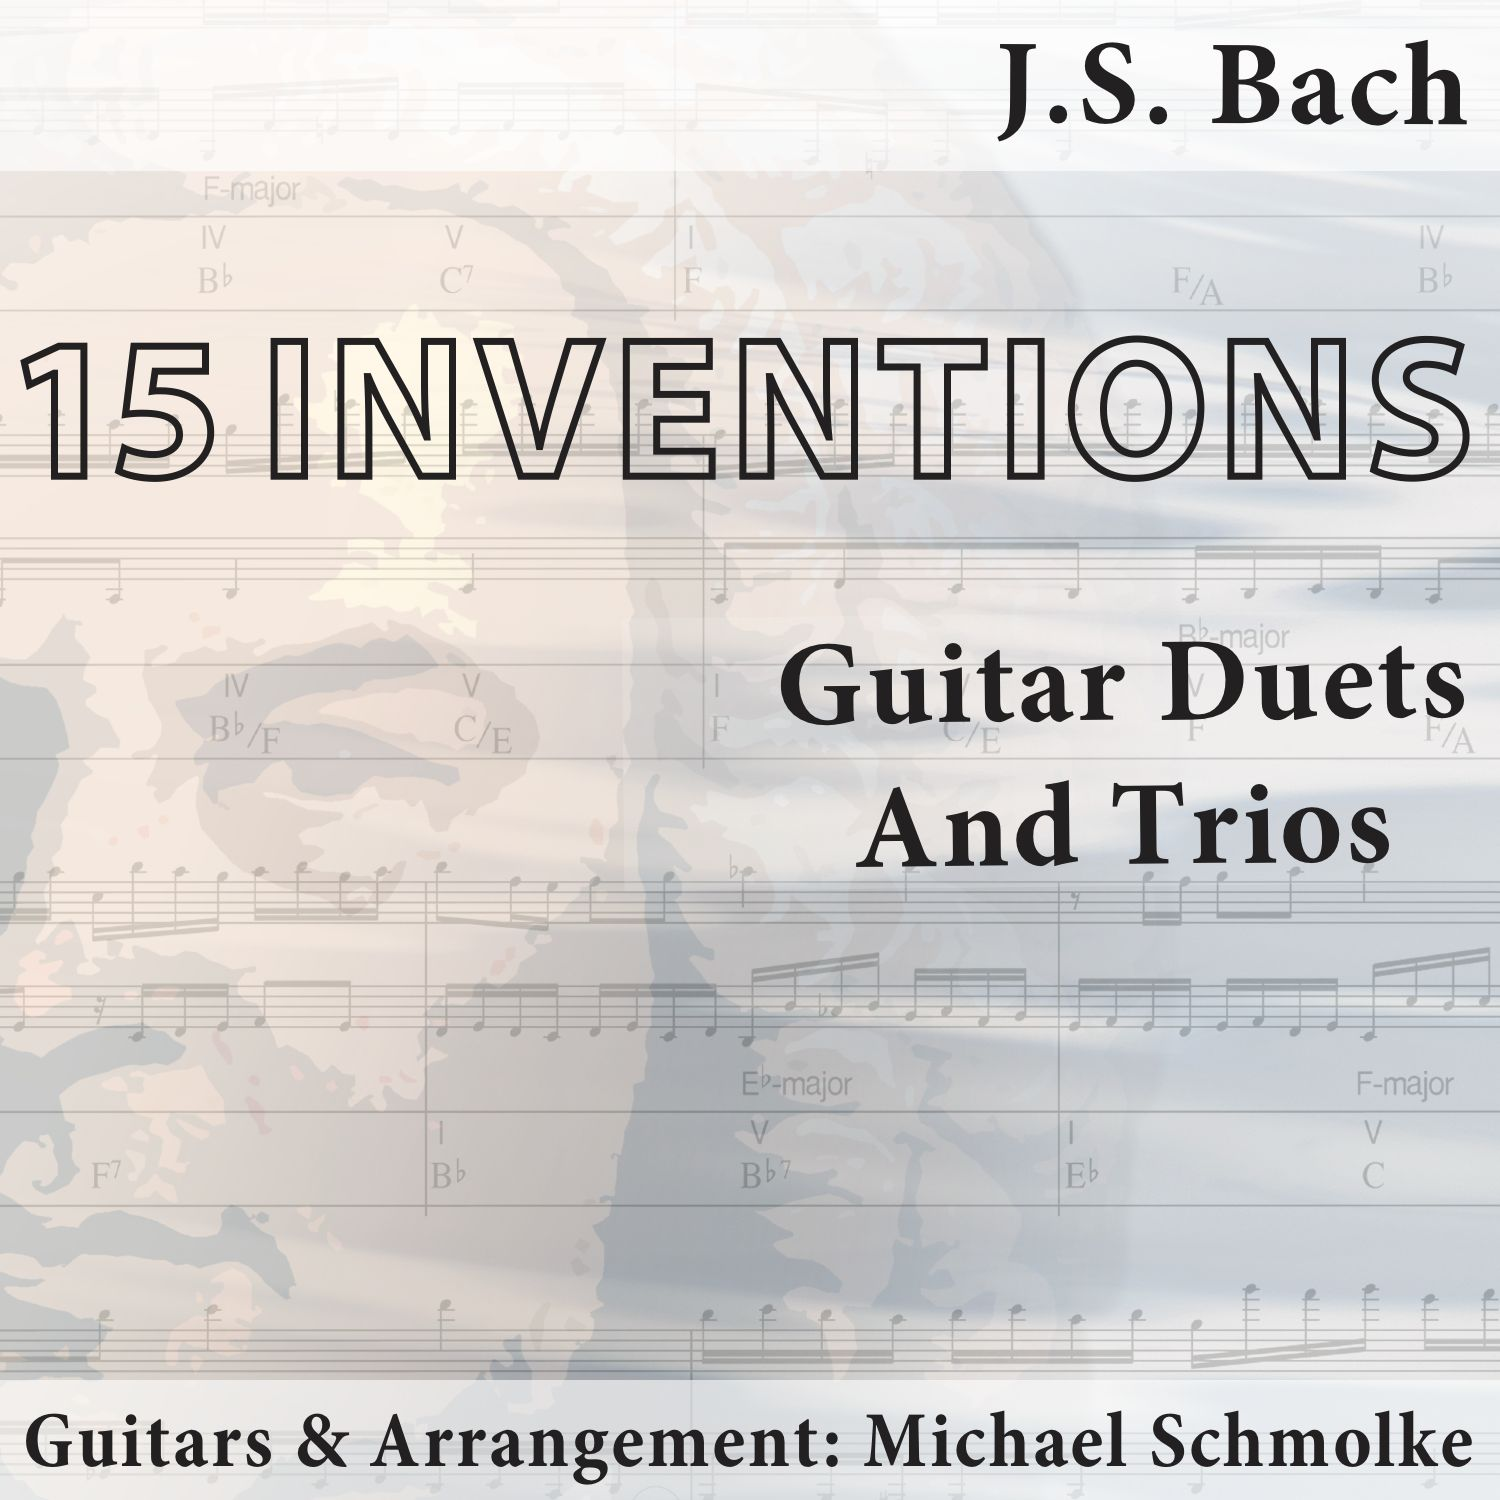 J.S. Bach: 15 Inventions - Guitar Duets And Trios by Michael Schmolke